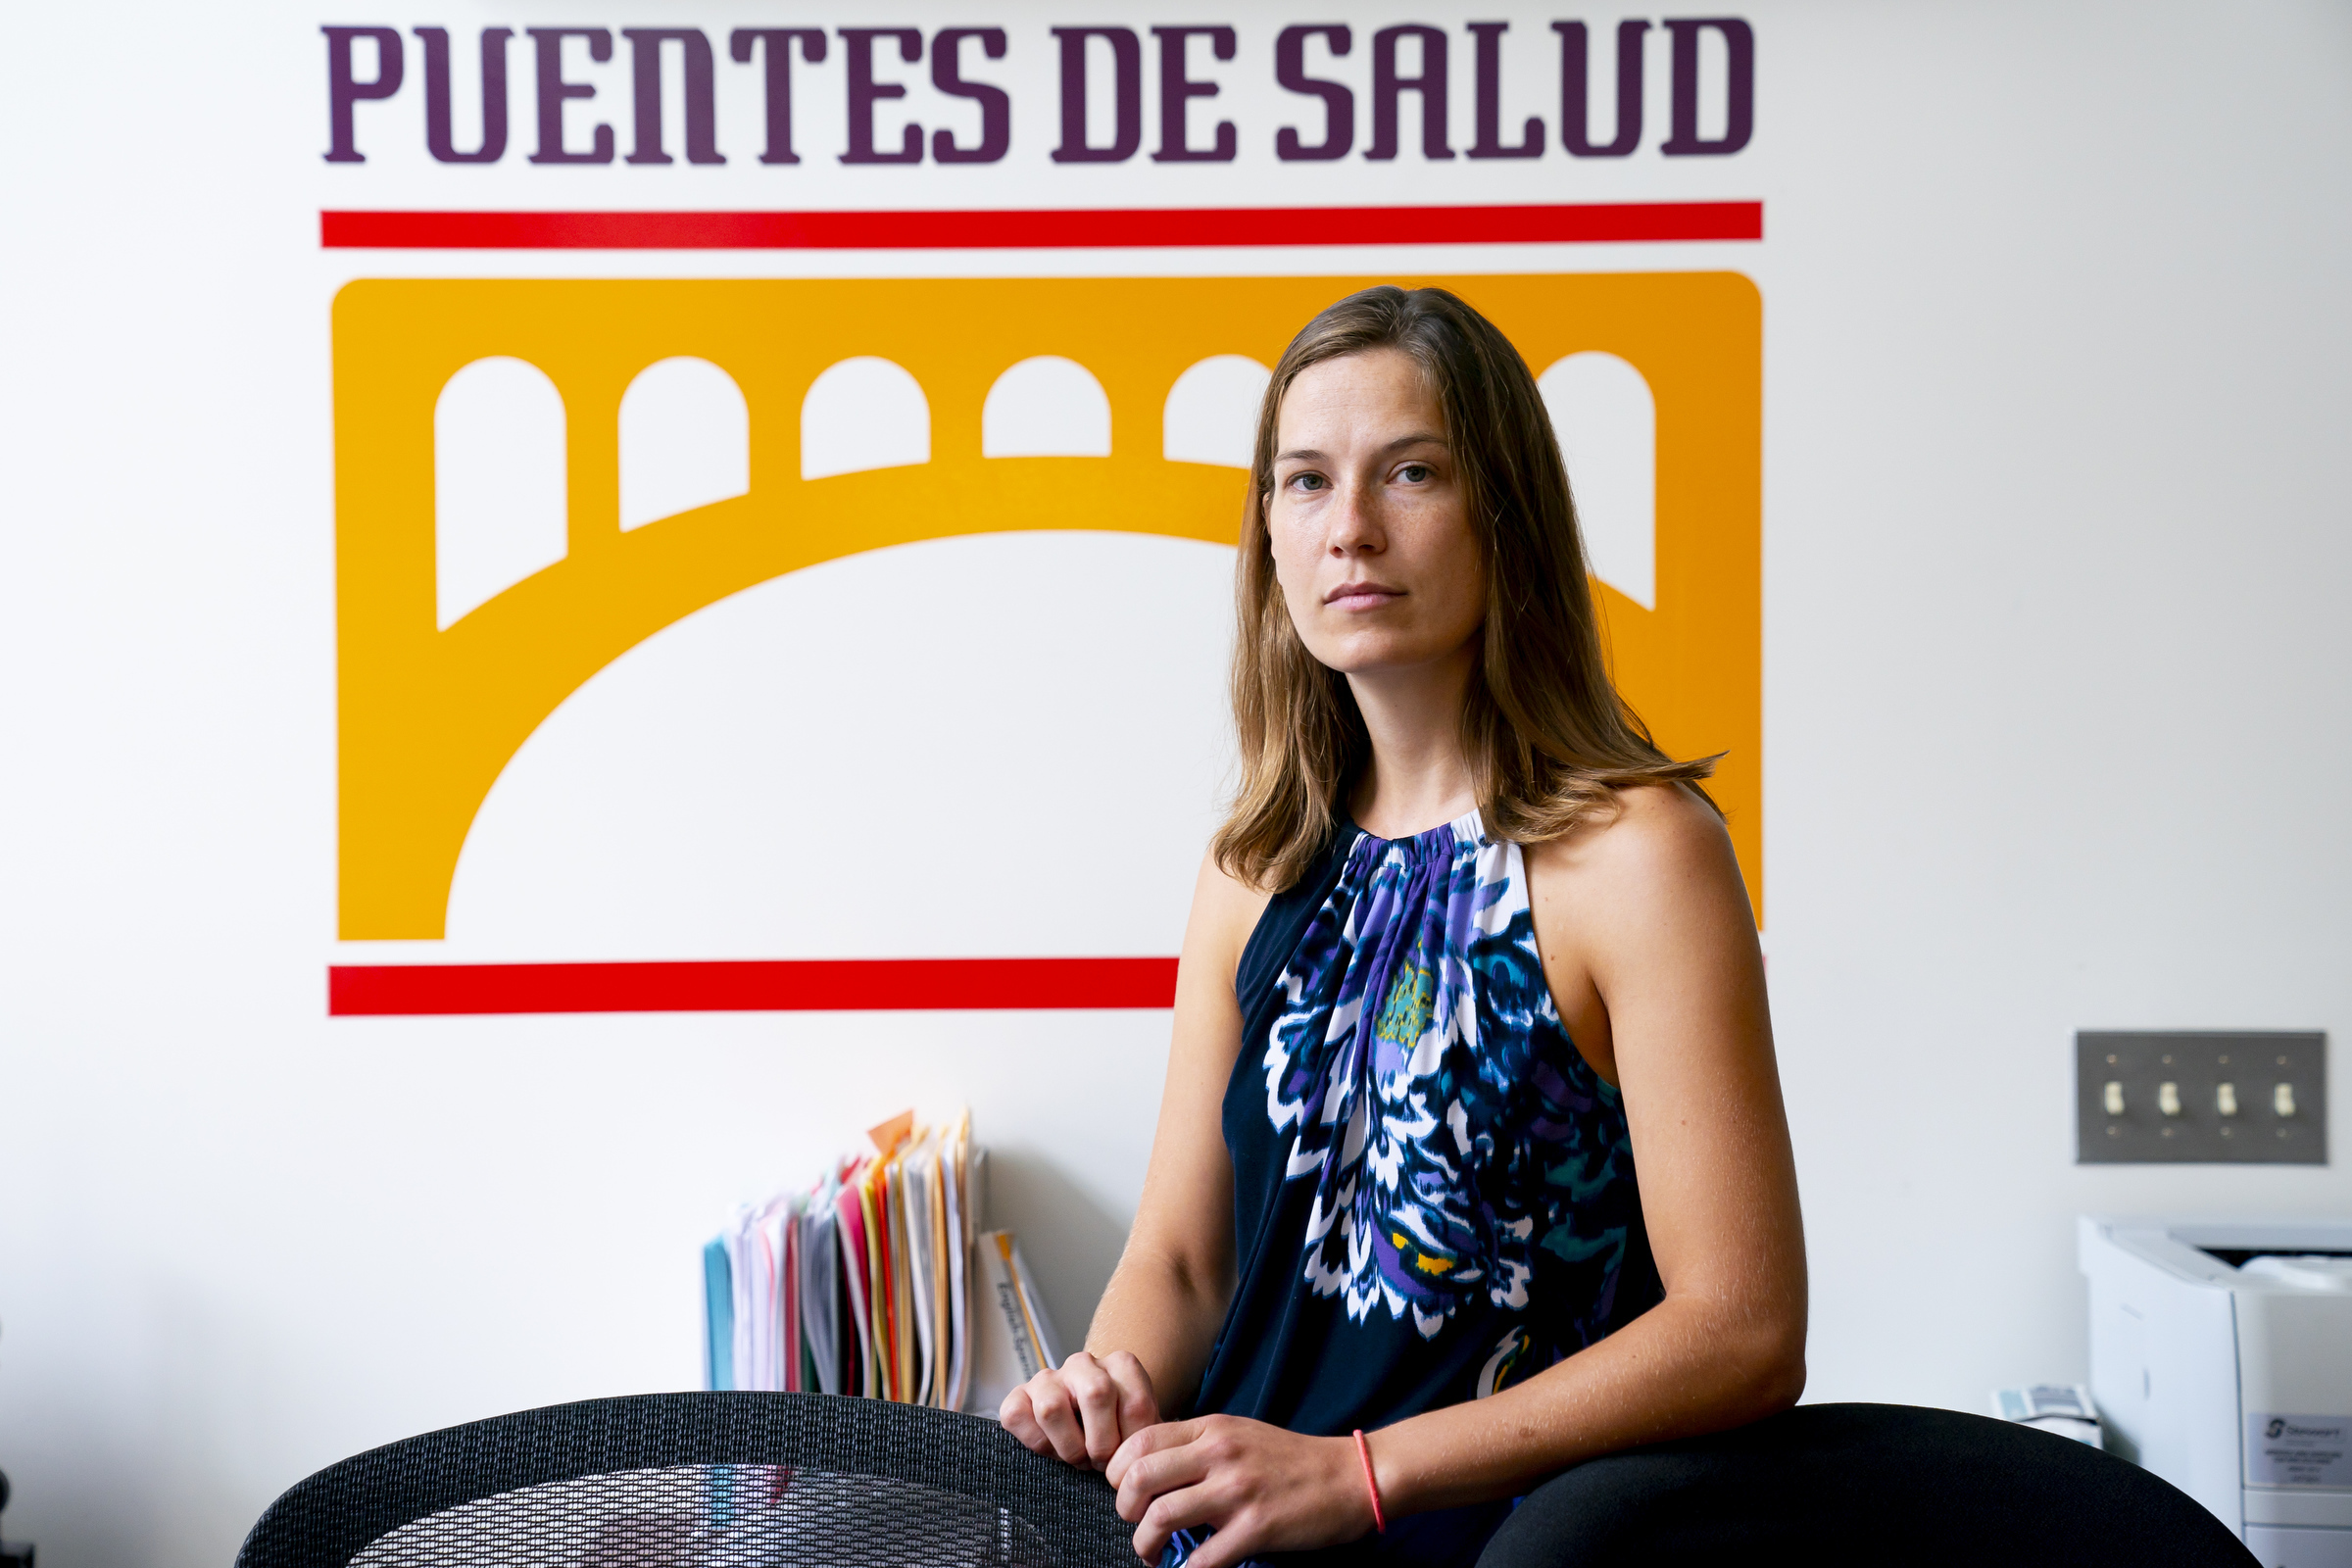 Dacey Stratton is medical director at the Puentes de Salud, a South Philadelphia health clinic serving Latino immigrants.